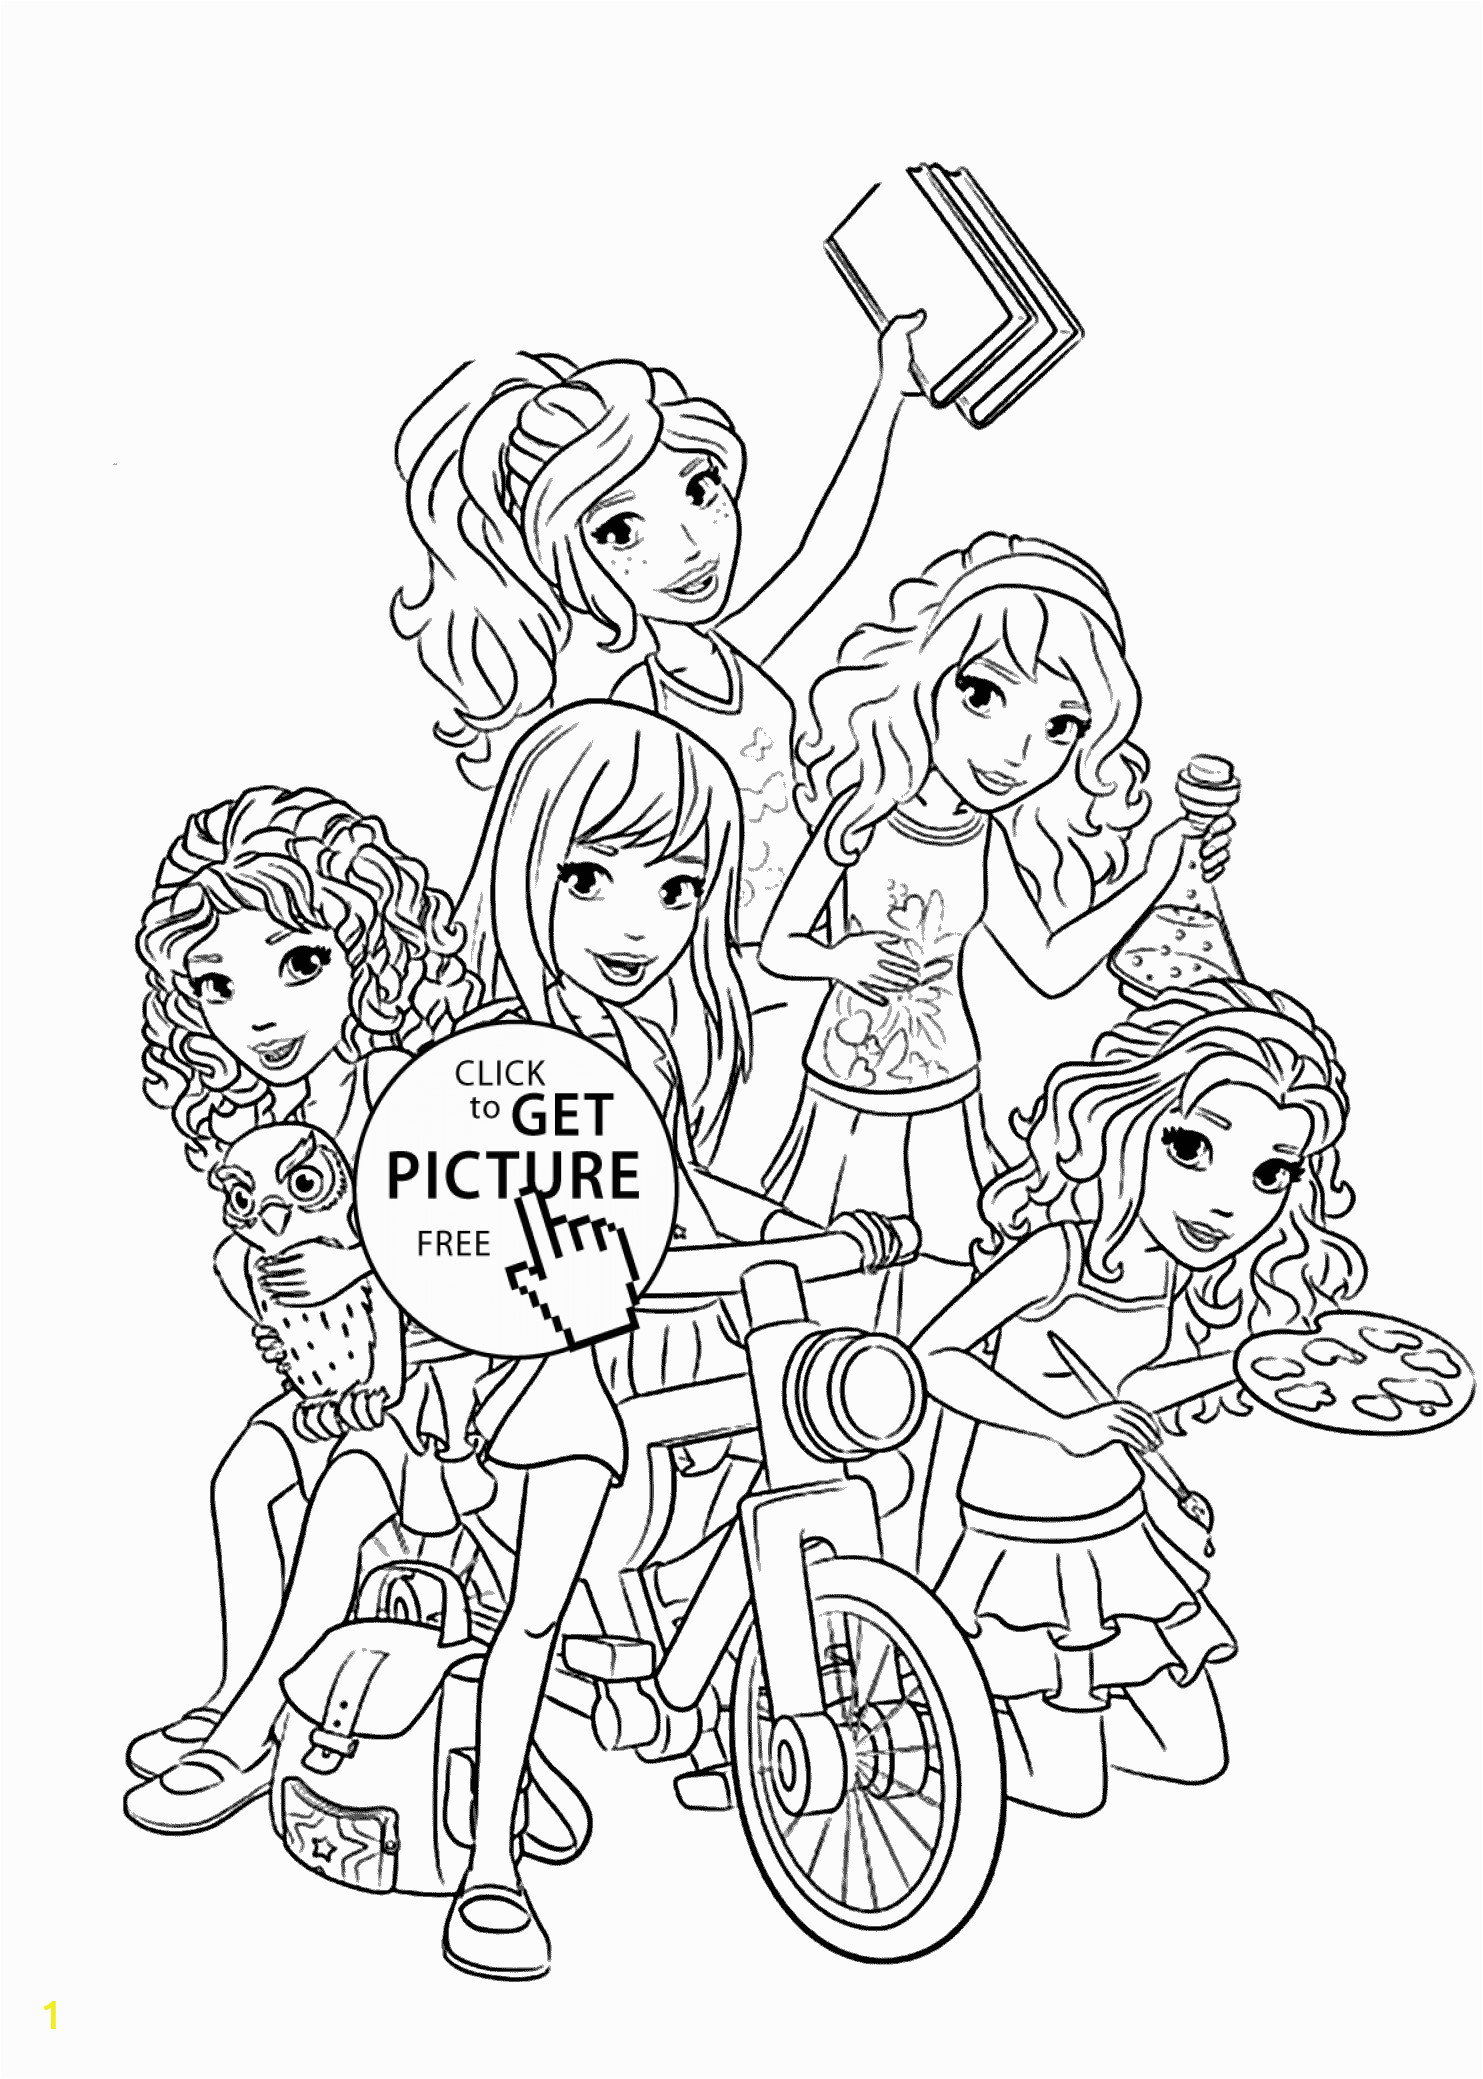 lego friends all coloring page for kids printable free lego friends